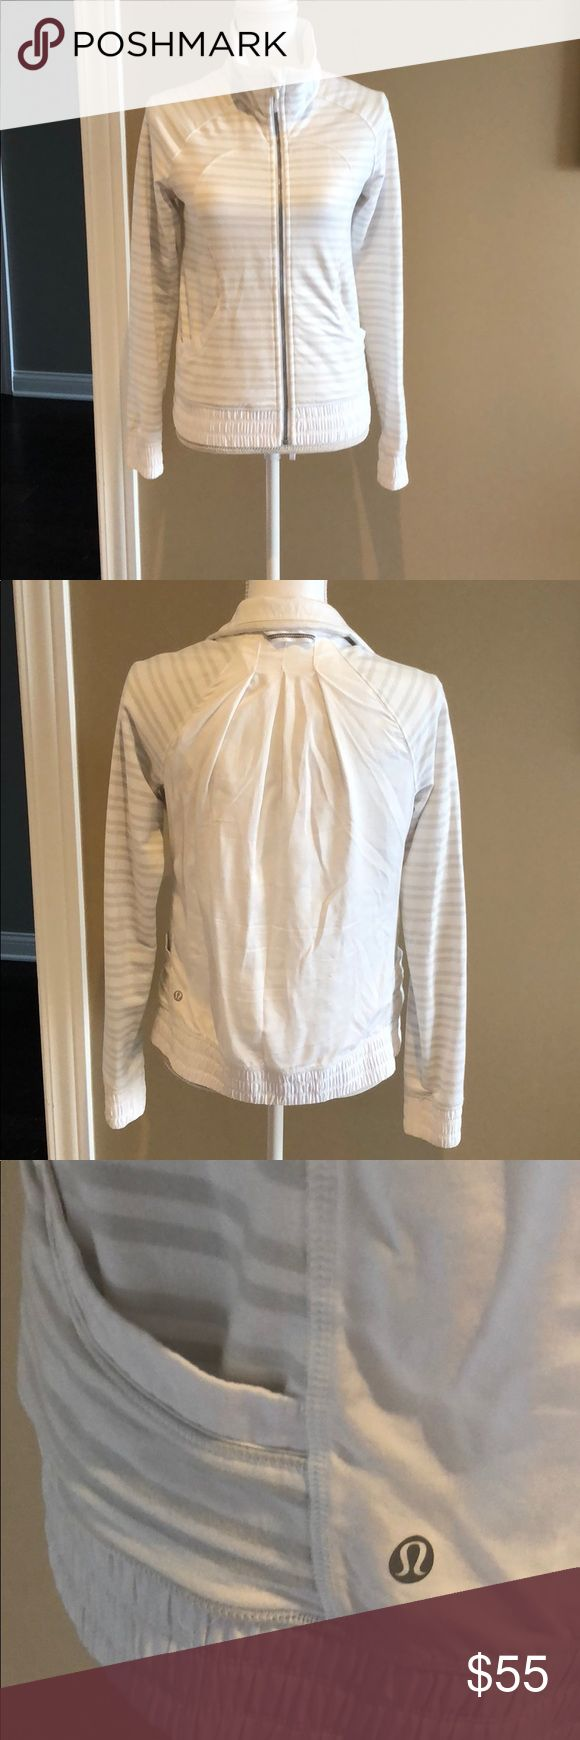 Lululemon white and gray striped zip up jacket Lululemon white and gray striped zip up jacket Like new condition  Size 6 although missing tag inside  2 pockets and loose and light backside. lululemon athletica Jackets & Coats